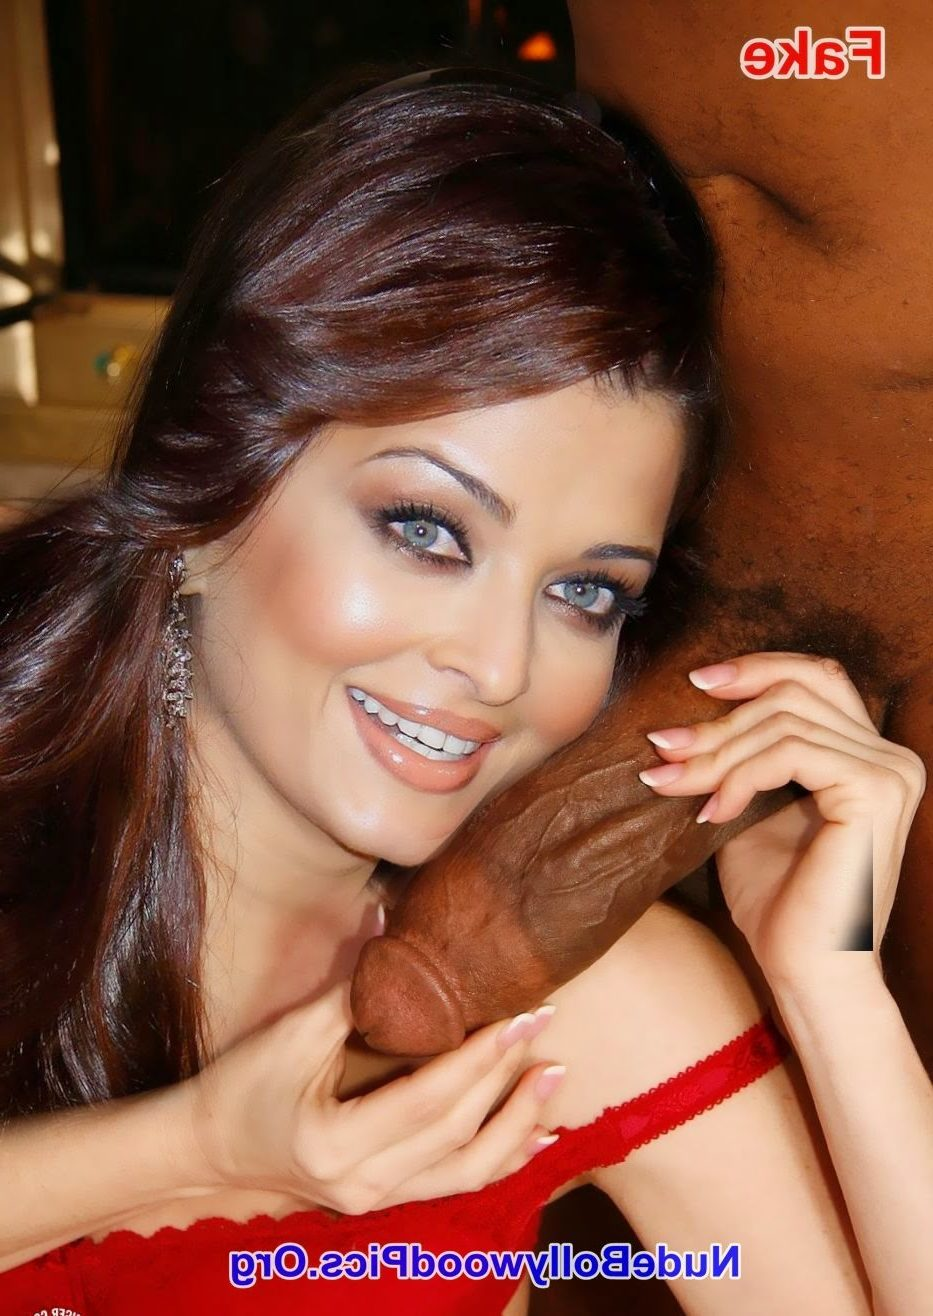 Aishwarya Rai shacking Black Cock